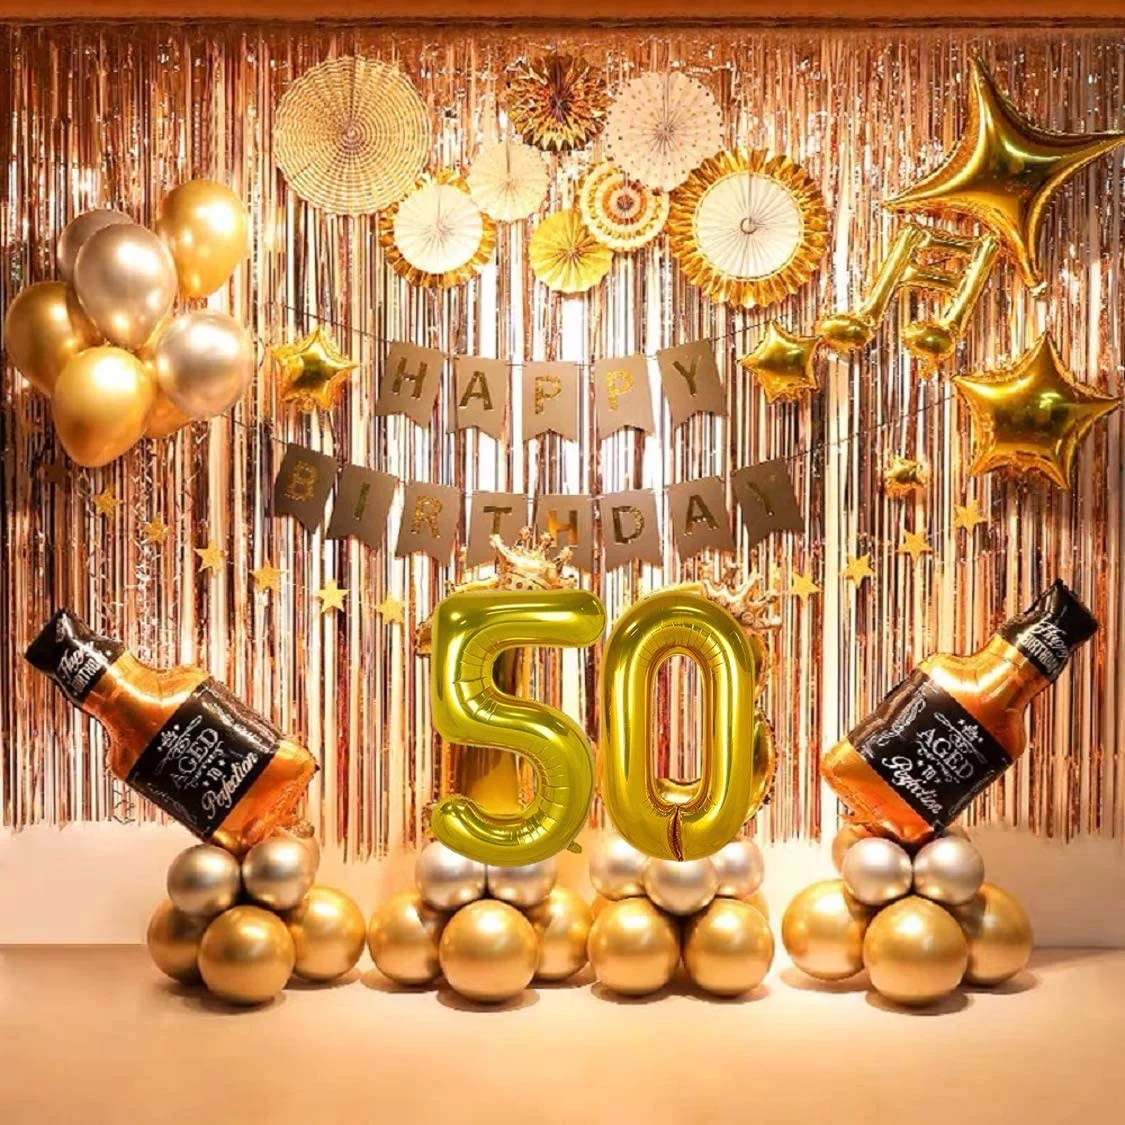 50th Birthday Party Supplies 50th Party Decorations Balloons Set With Gold Paper Fan Flowers Birthday Banner 79 Pcs Included Walmart Com Walmart Com